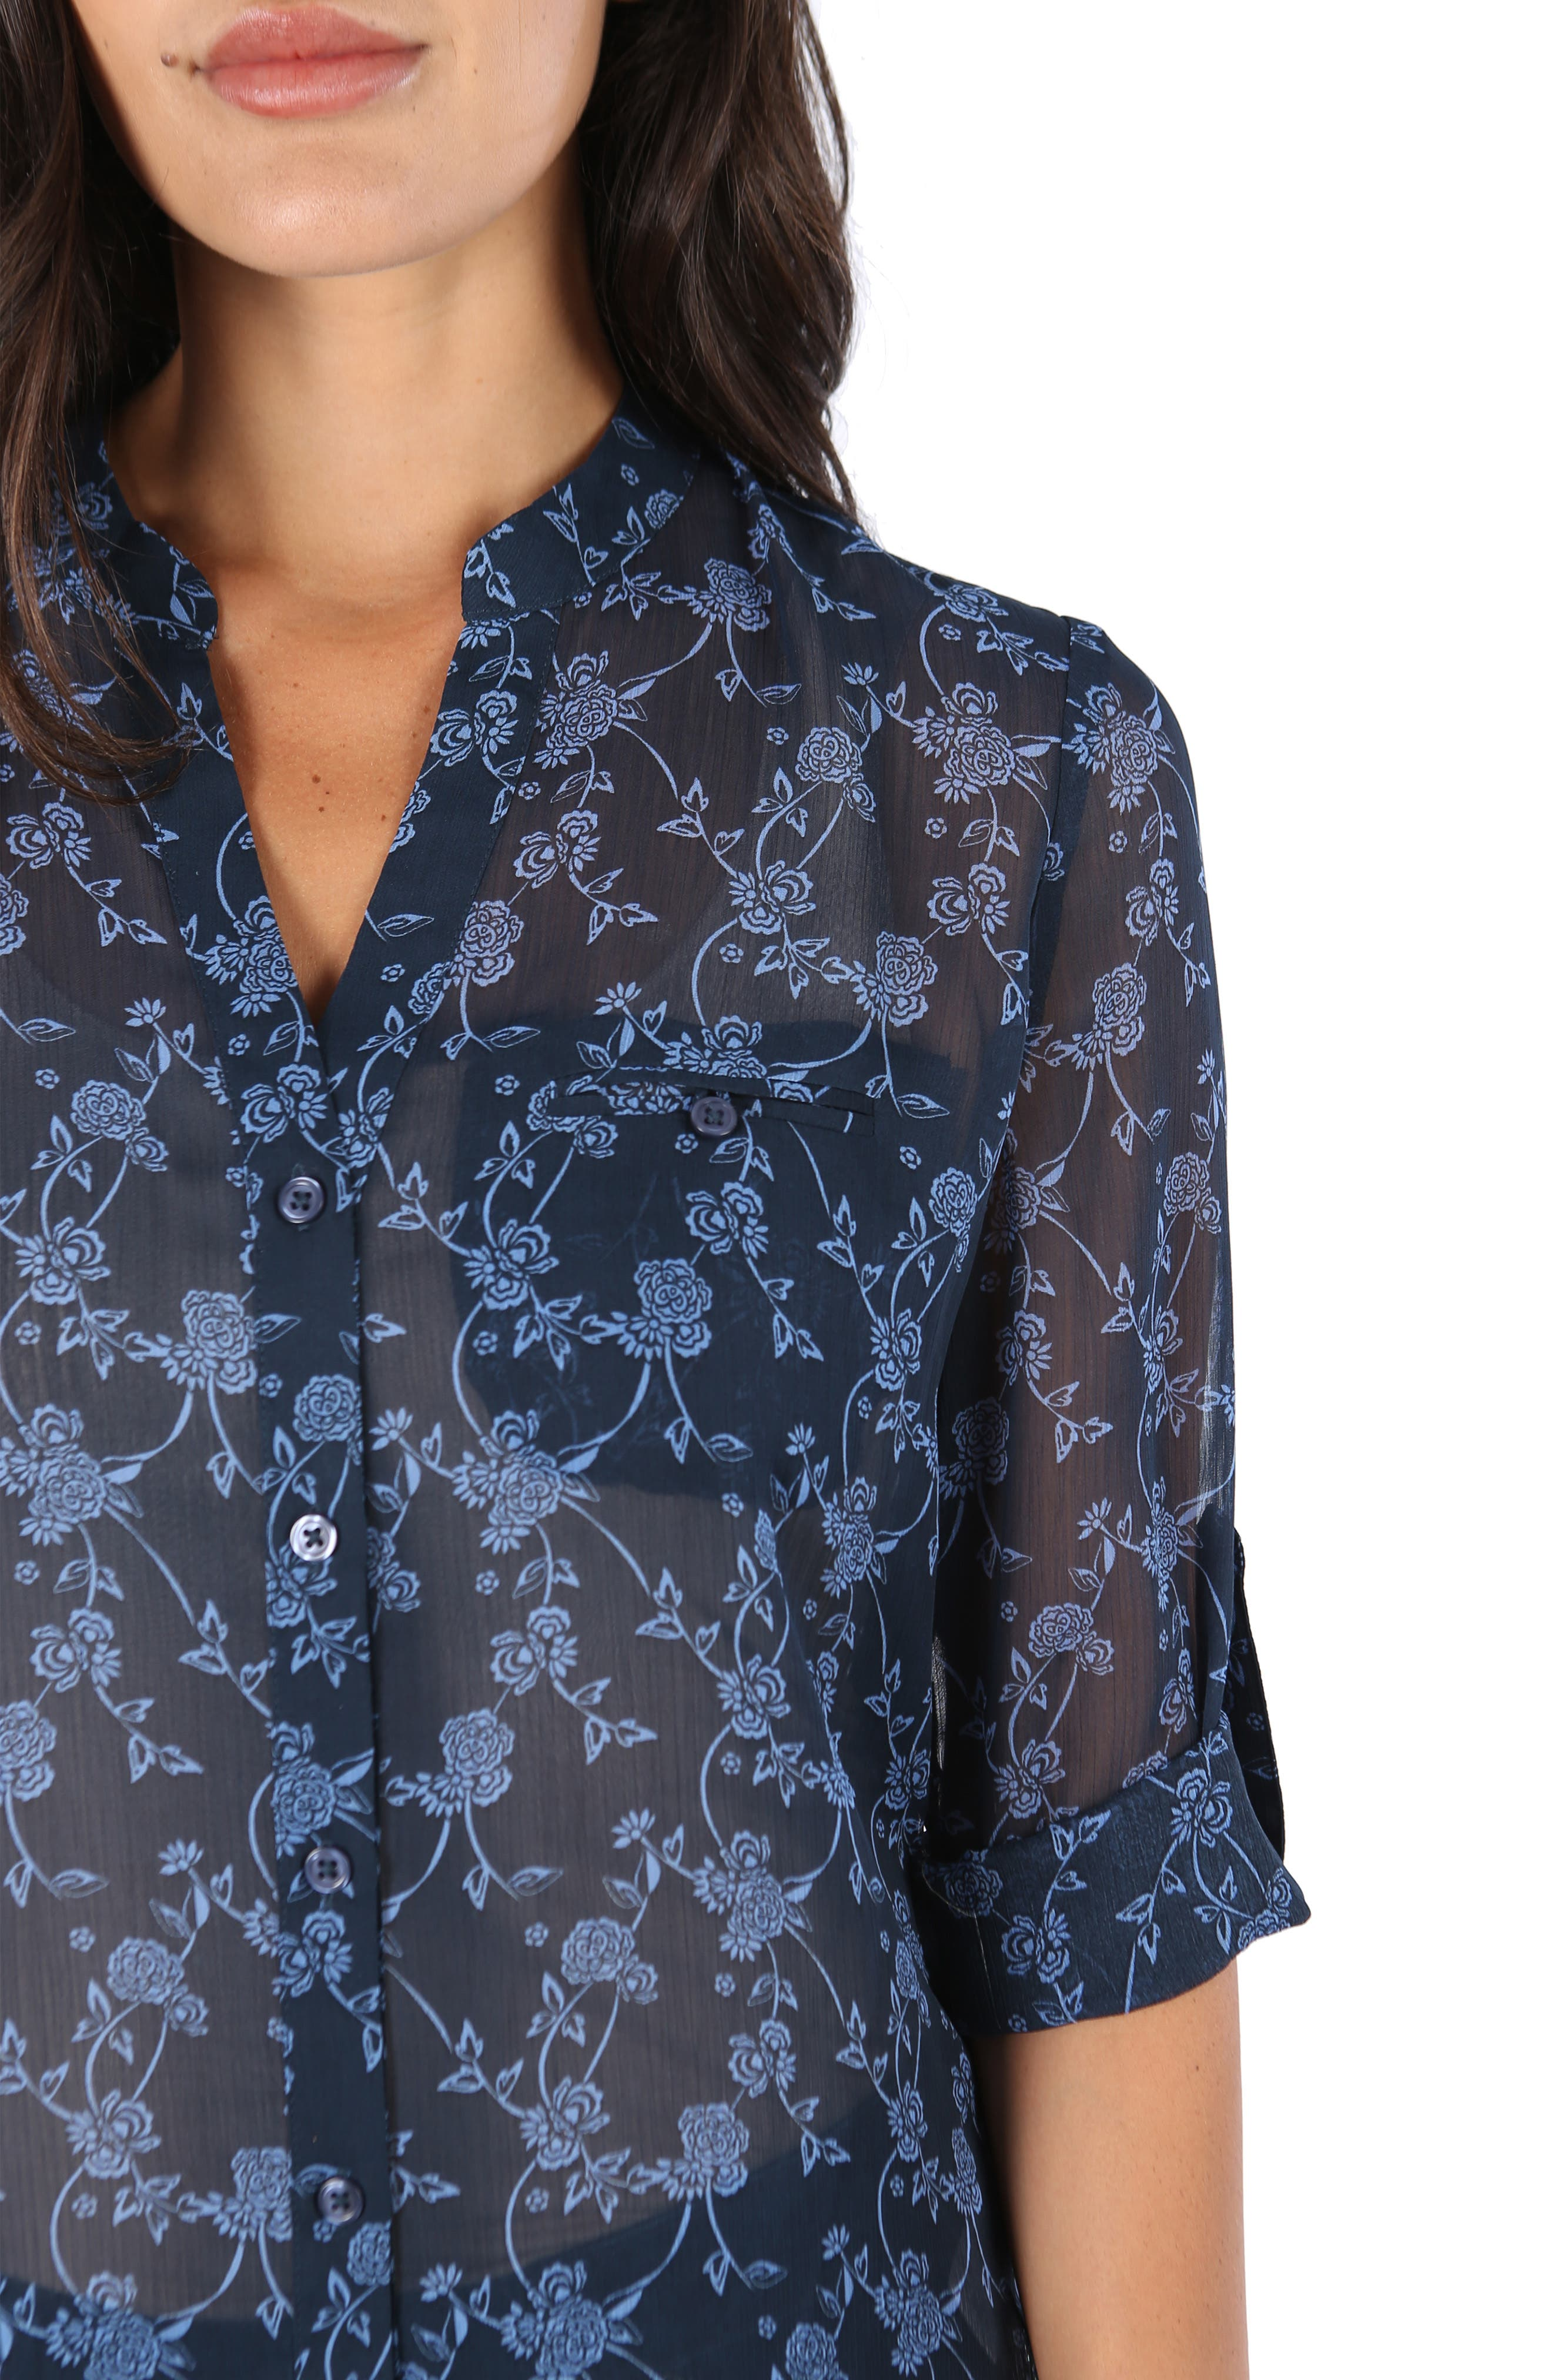 KUT from the the Kloth Jasmine Floral Blouse,                             Alternate thumbnail 4, color,                             416